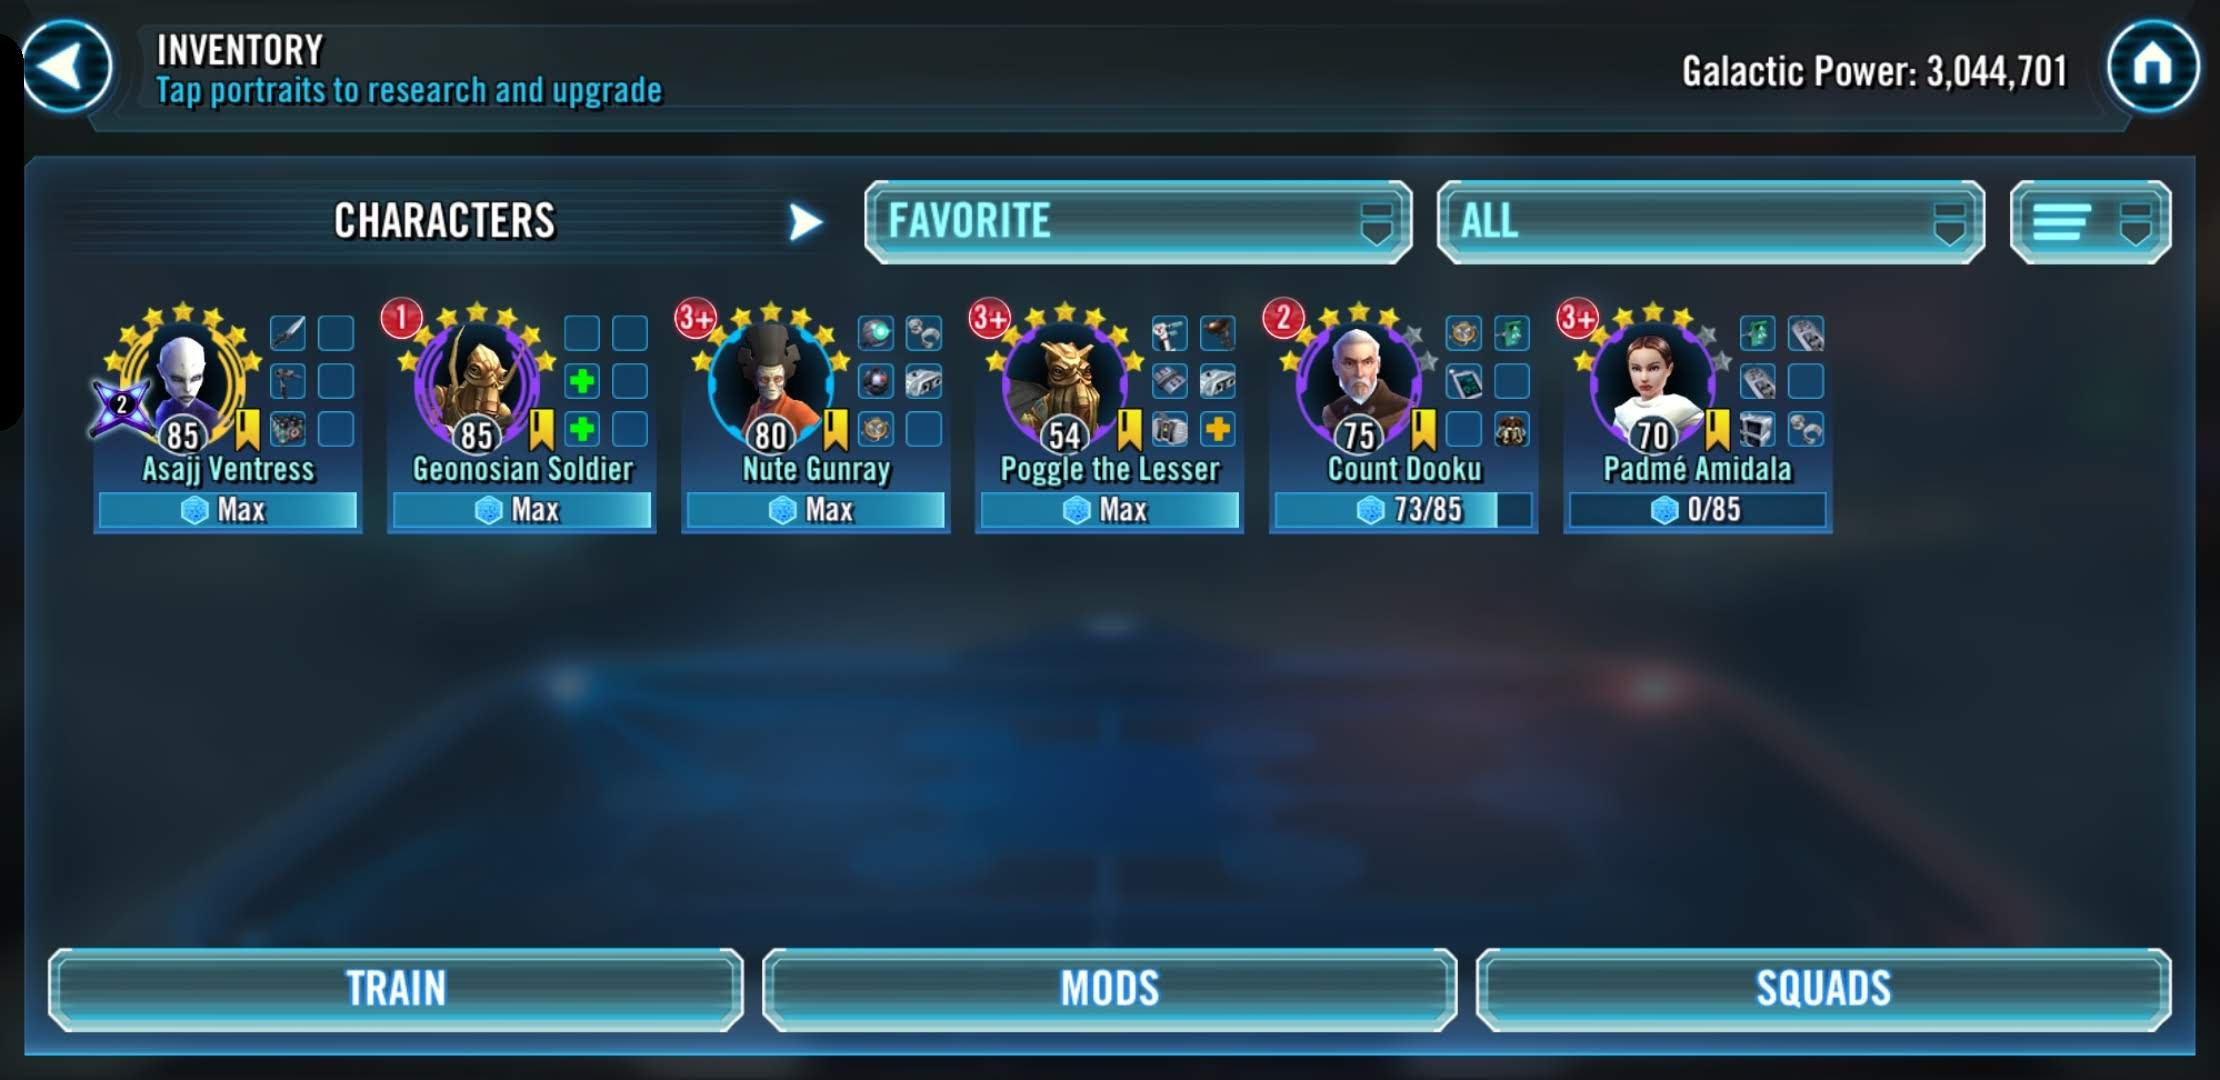 Padme 5* and 7* bare minimum to acquire, please post your